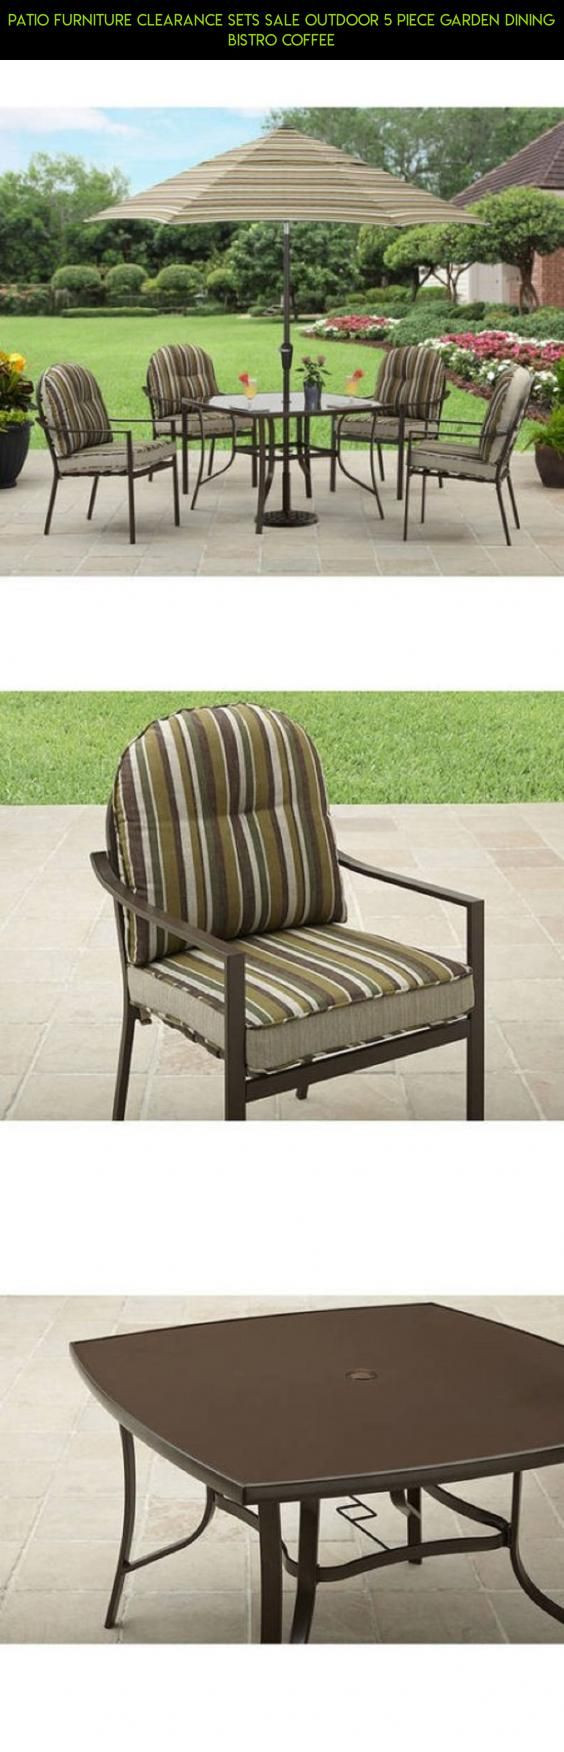 20 Of the Best Ideas for Home Depot Patio Furniture Sale ...